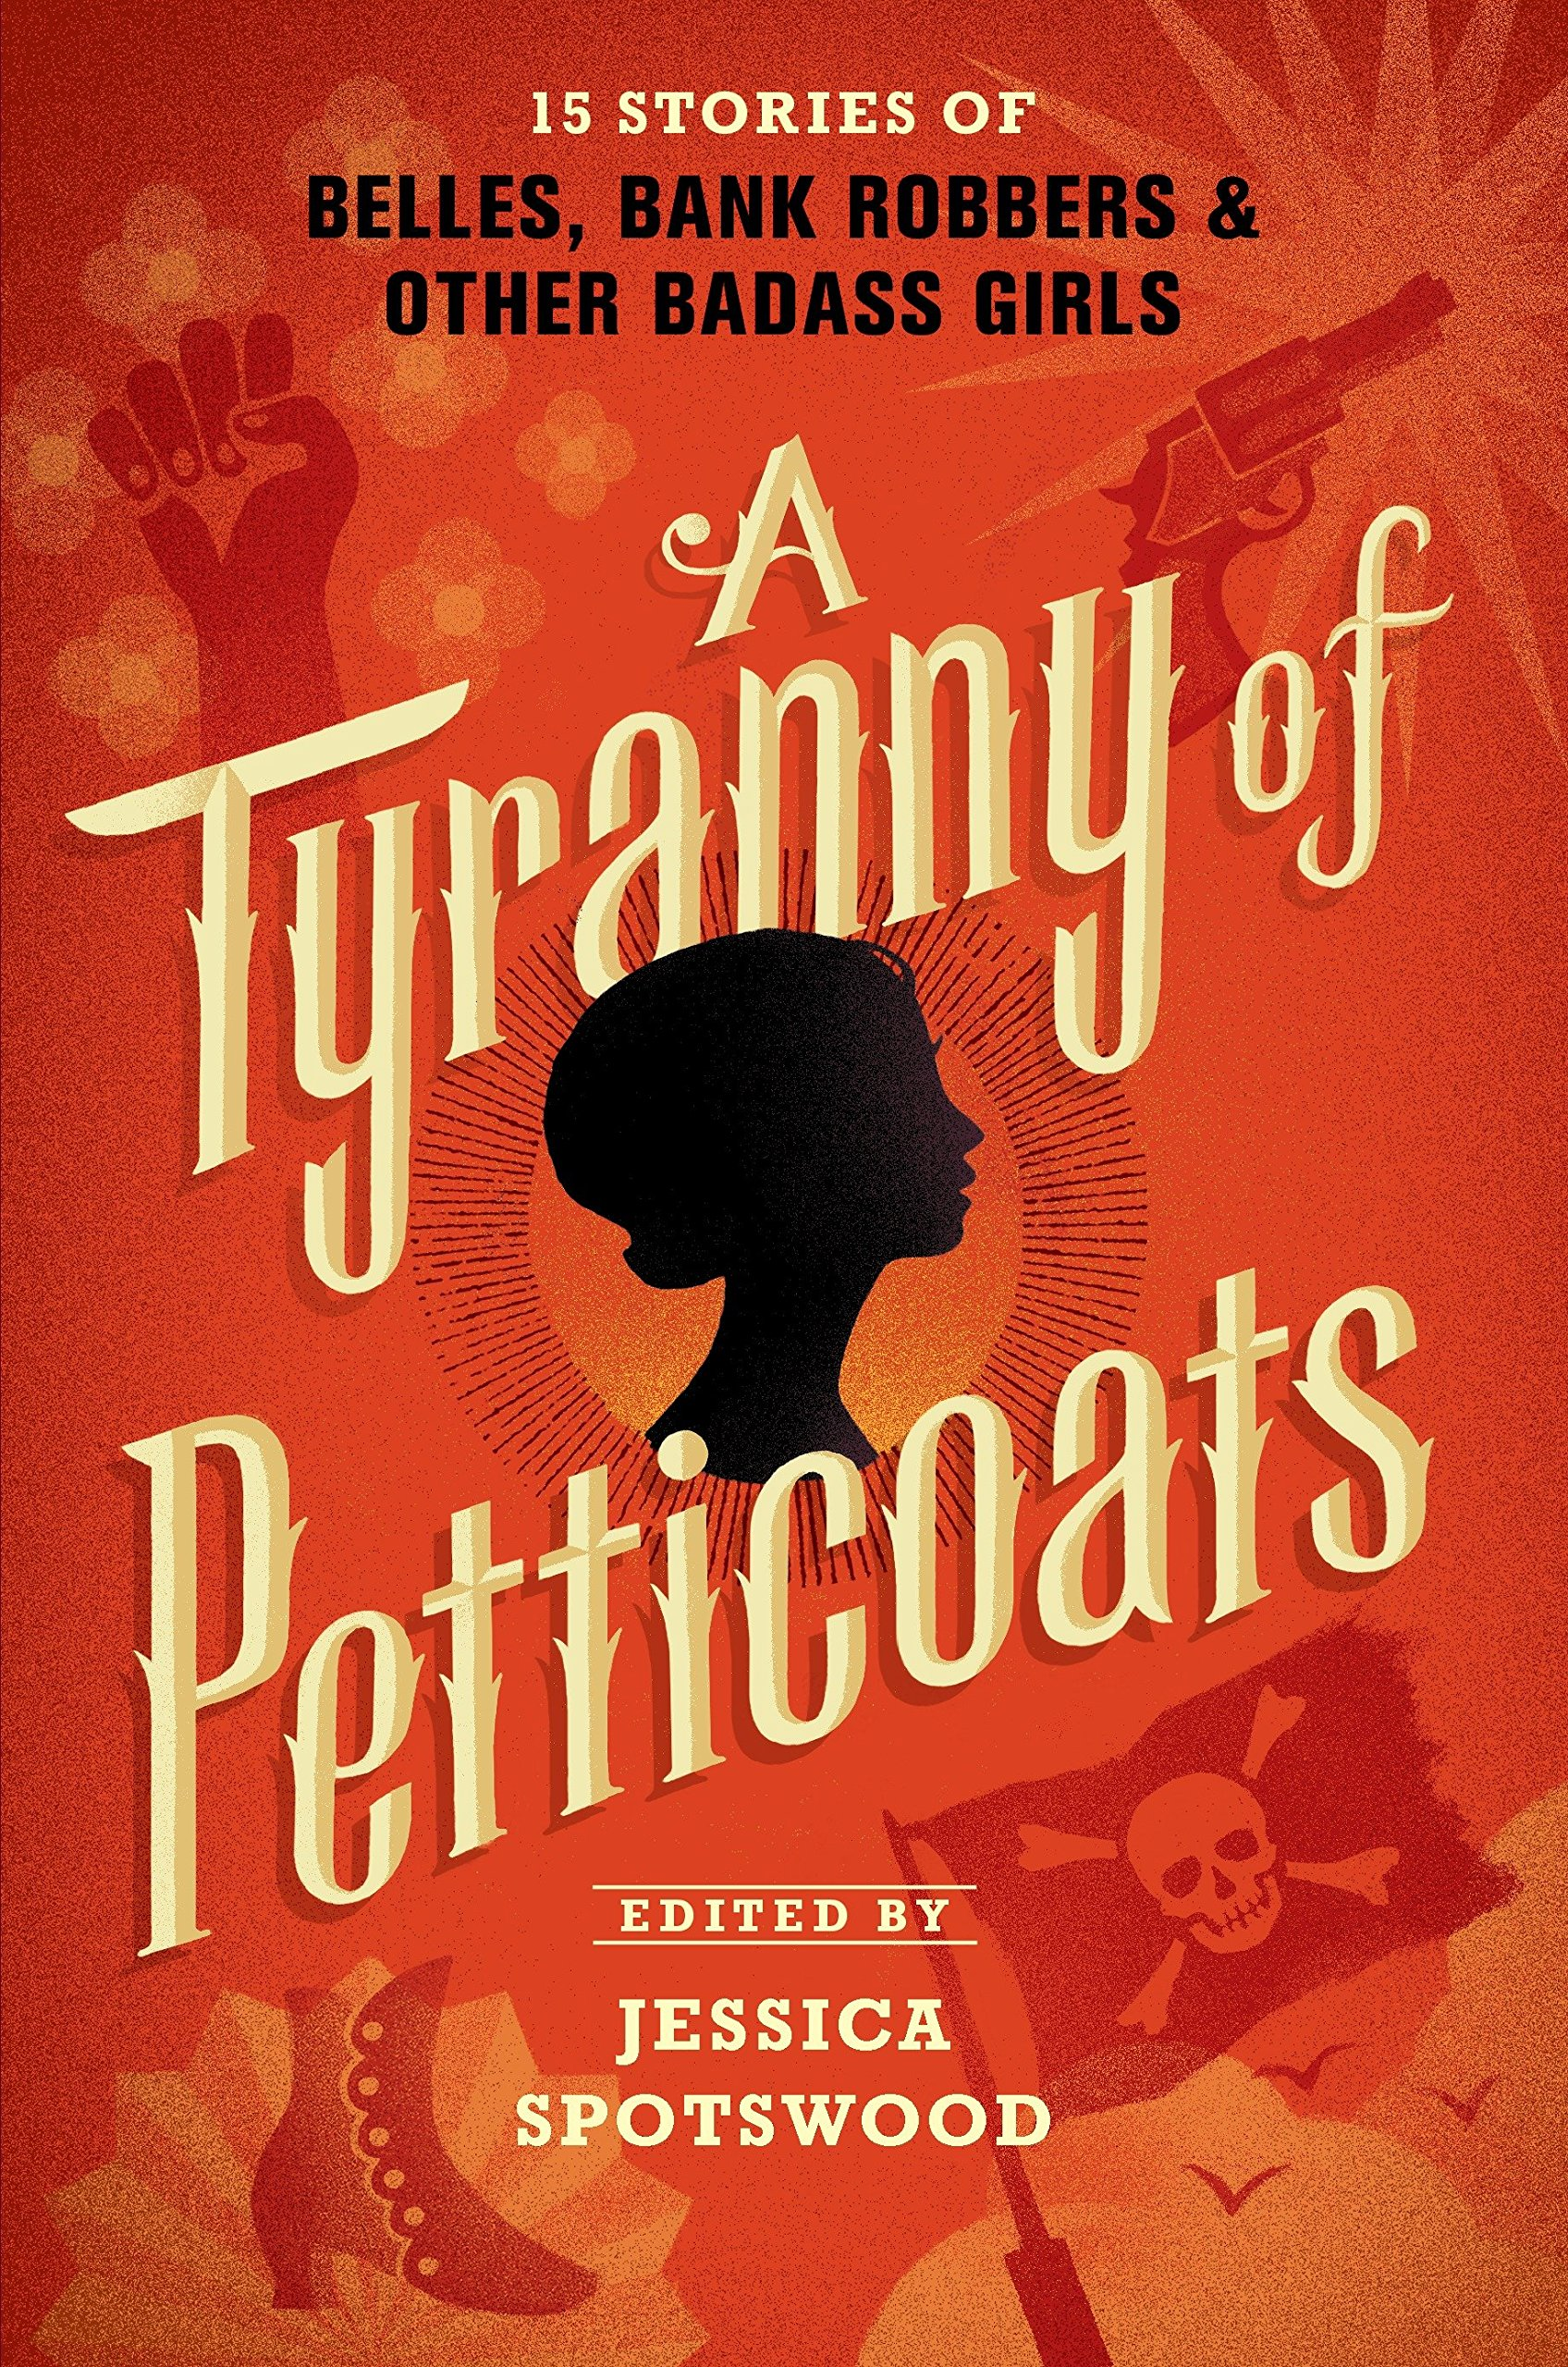 Amazon.com: A Tyranny of Petticoats: 15 Stories of Belles, Bank Robbers &  Other Badass Girls (9780763678487): Jessica Spotswood: Books